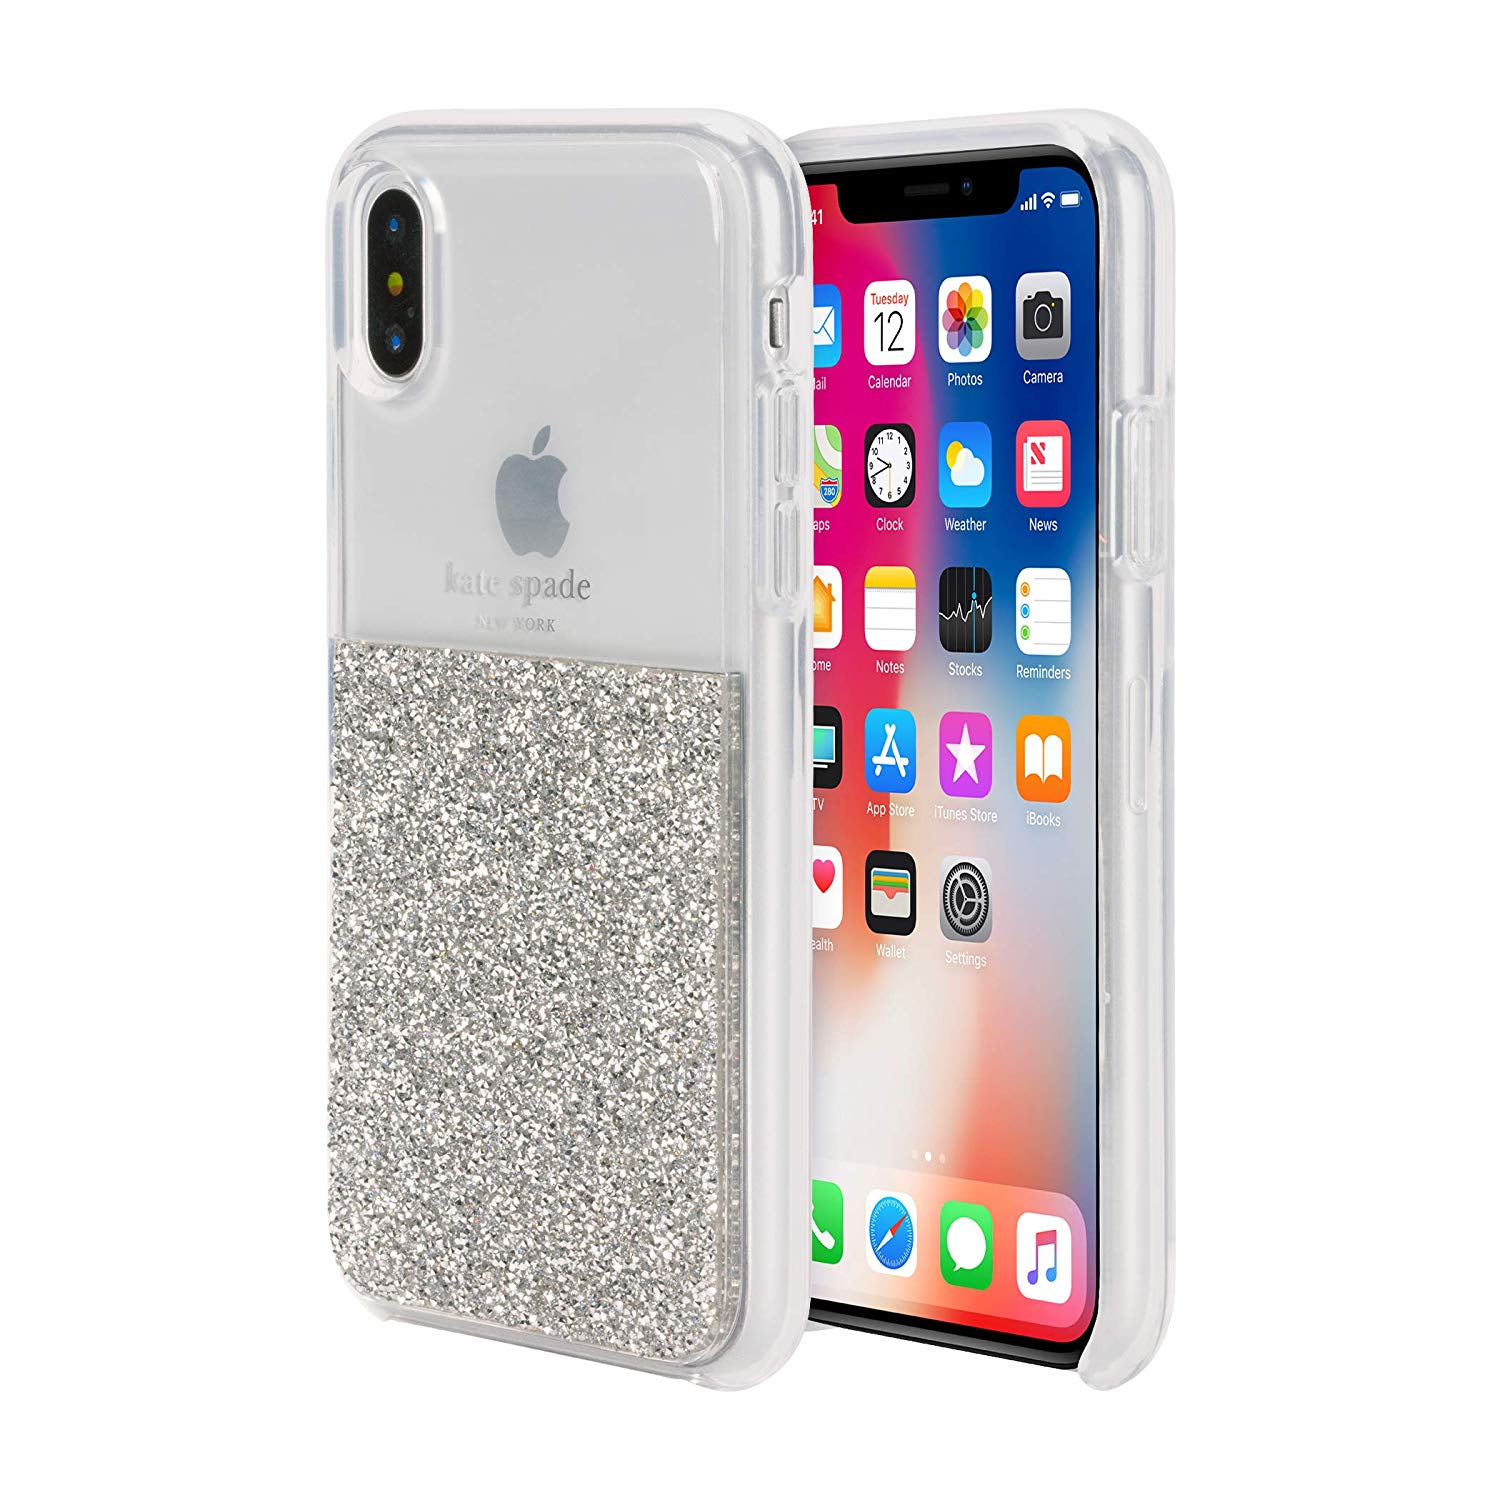 5c451b914b7e Details about KATE SPADE NEW YORK HALF CLEAR CRYSTAL CASE FOR IPHONE XS MAX  - SILVER